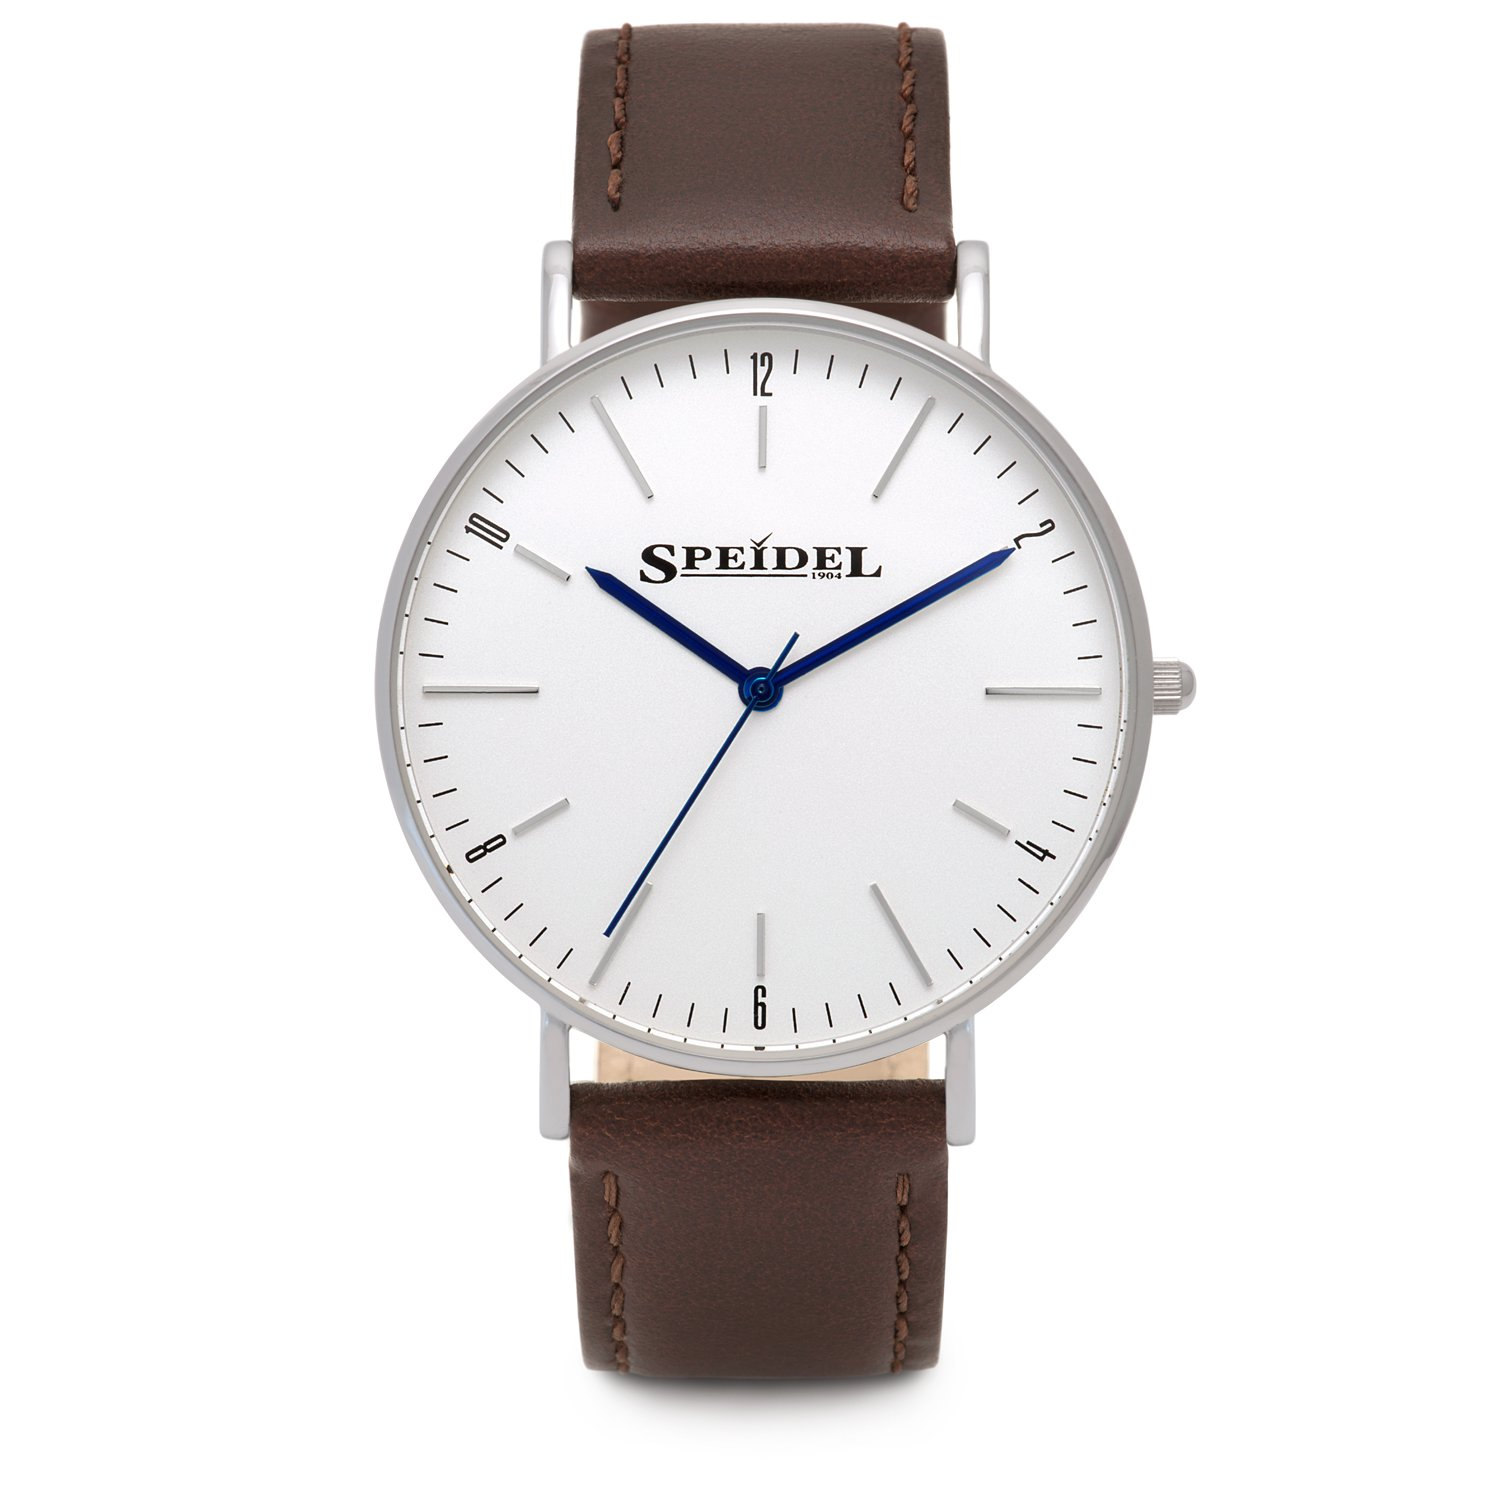 Speidel Men's Slim Watch with Simple Classic Pearl White Dial, Ultra Thin Stainless Steel Case, 3 Hand Quartz Movement, Genuine Brown Leather Band and Water Resistant to 99ft